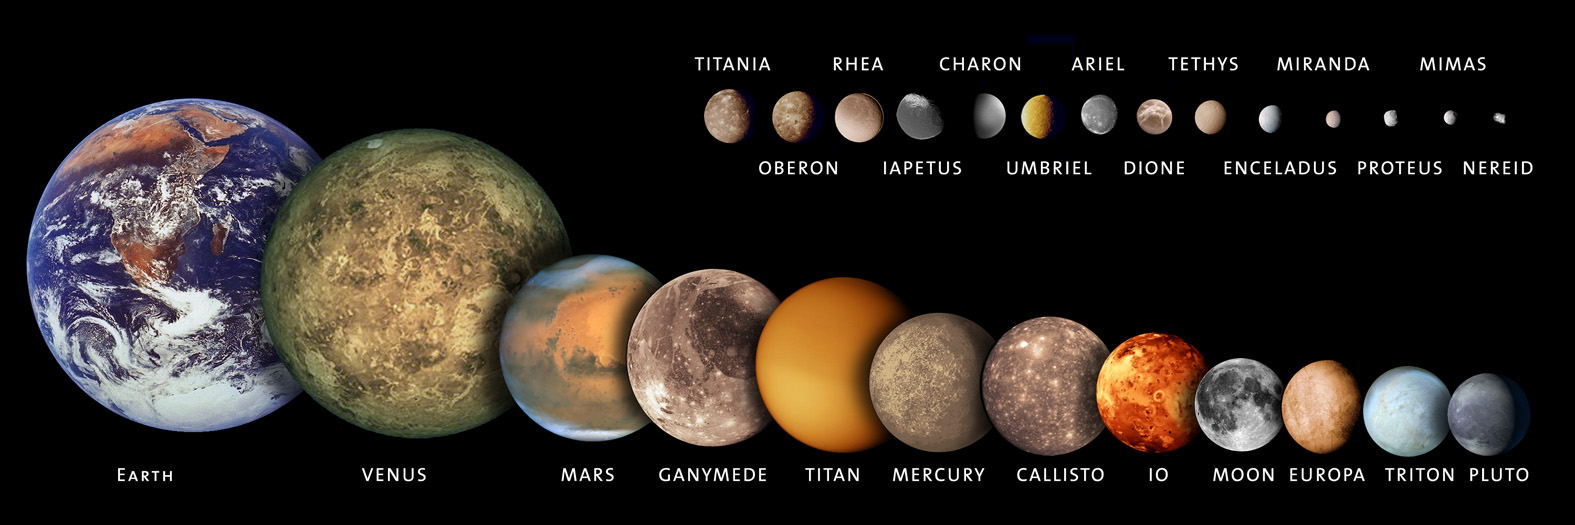 Moons of the Solar System - Pics about space